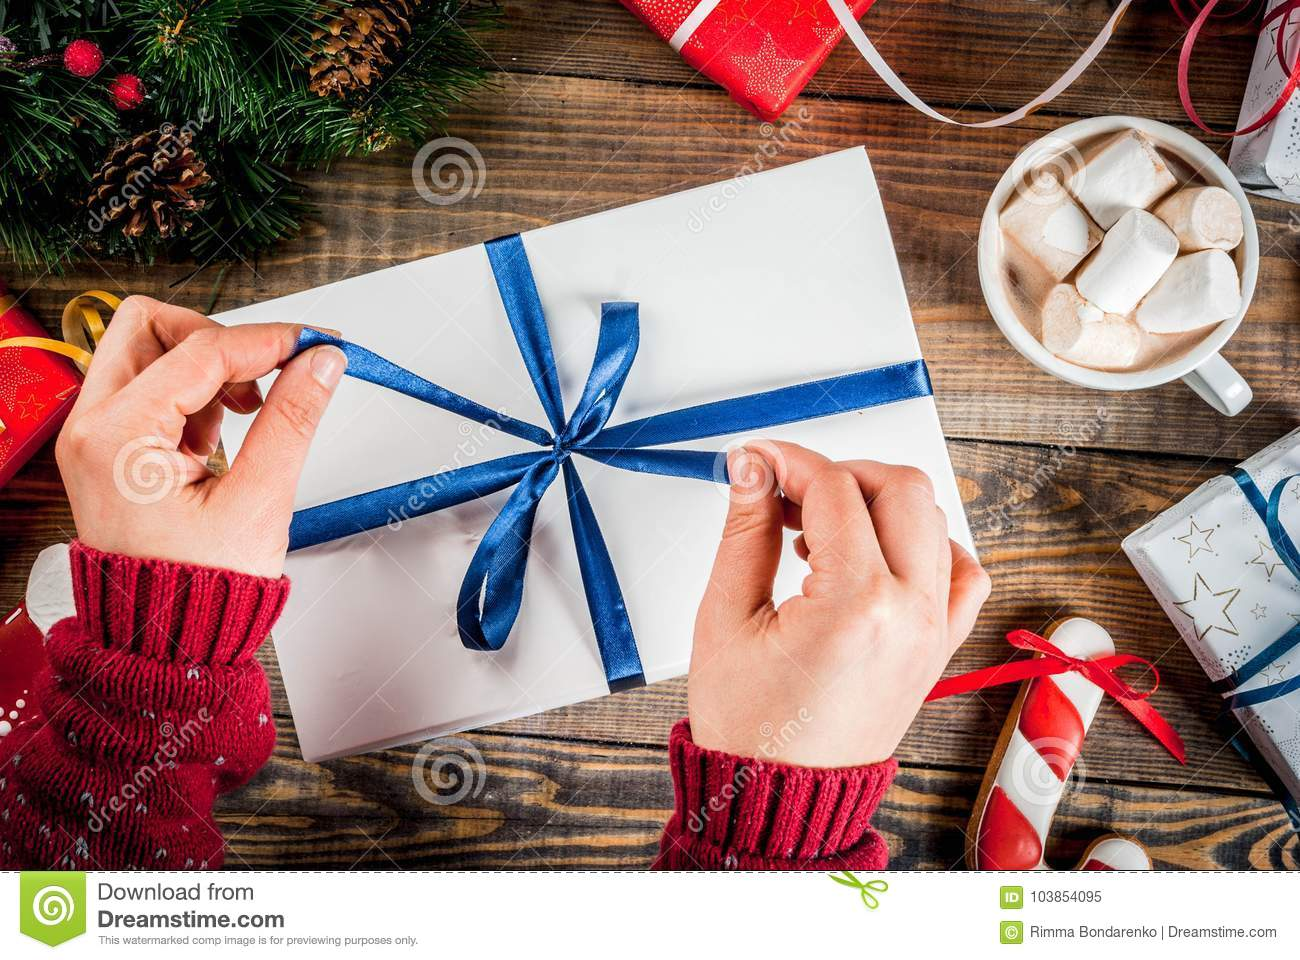 Christmas Gifts On Wooden Table Stock Image - Image of decorative ...